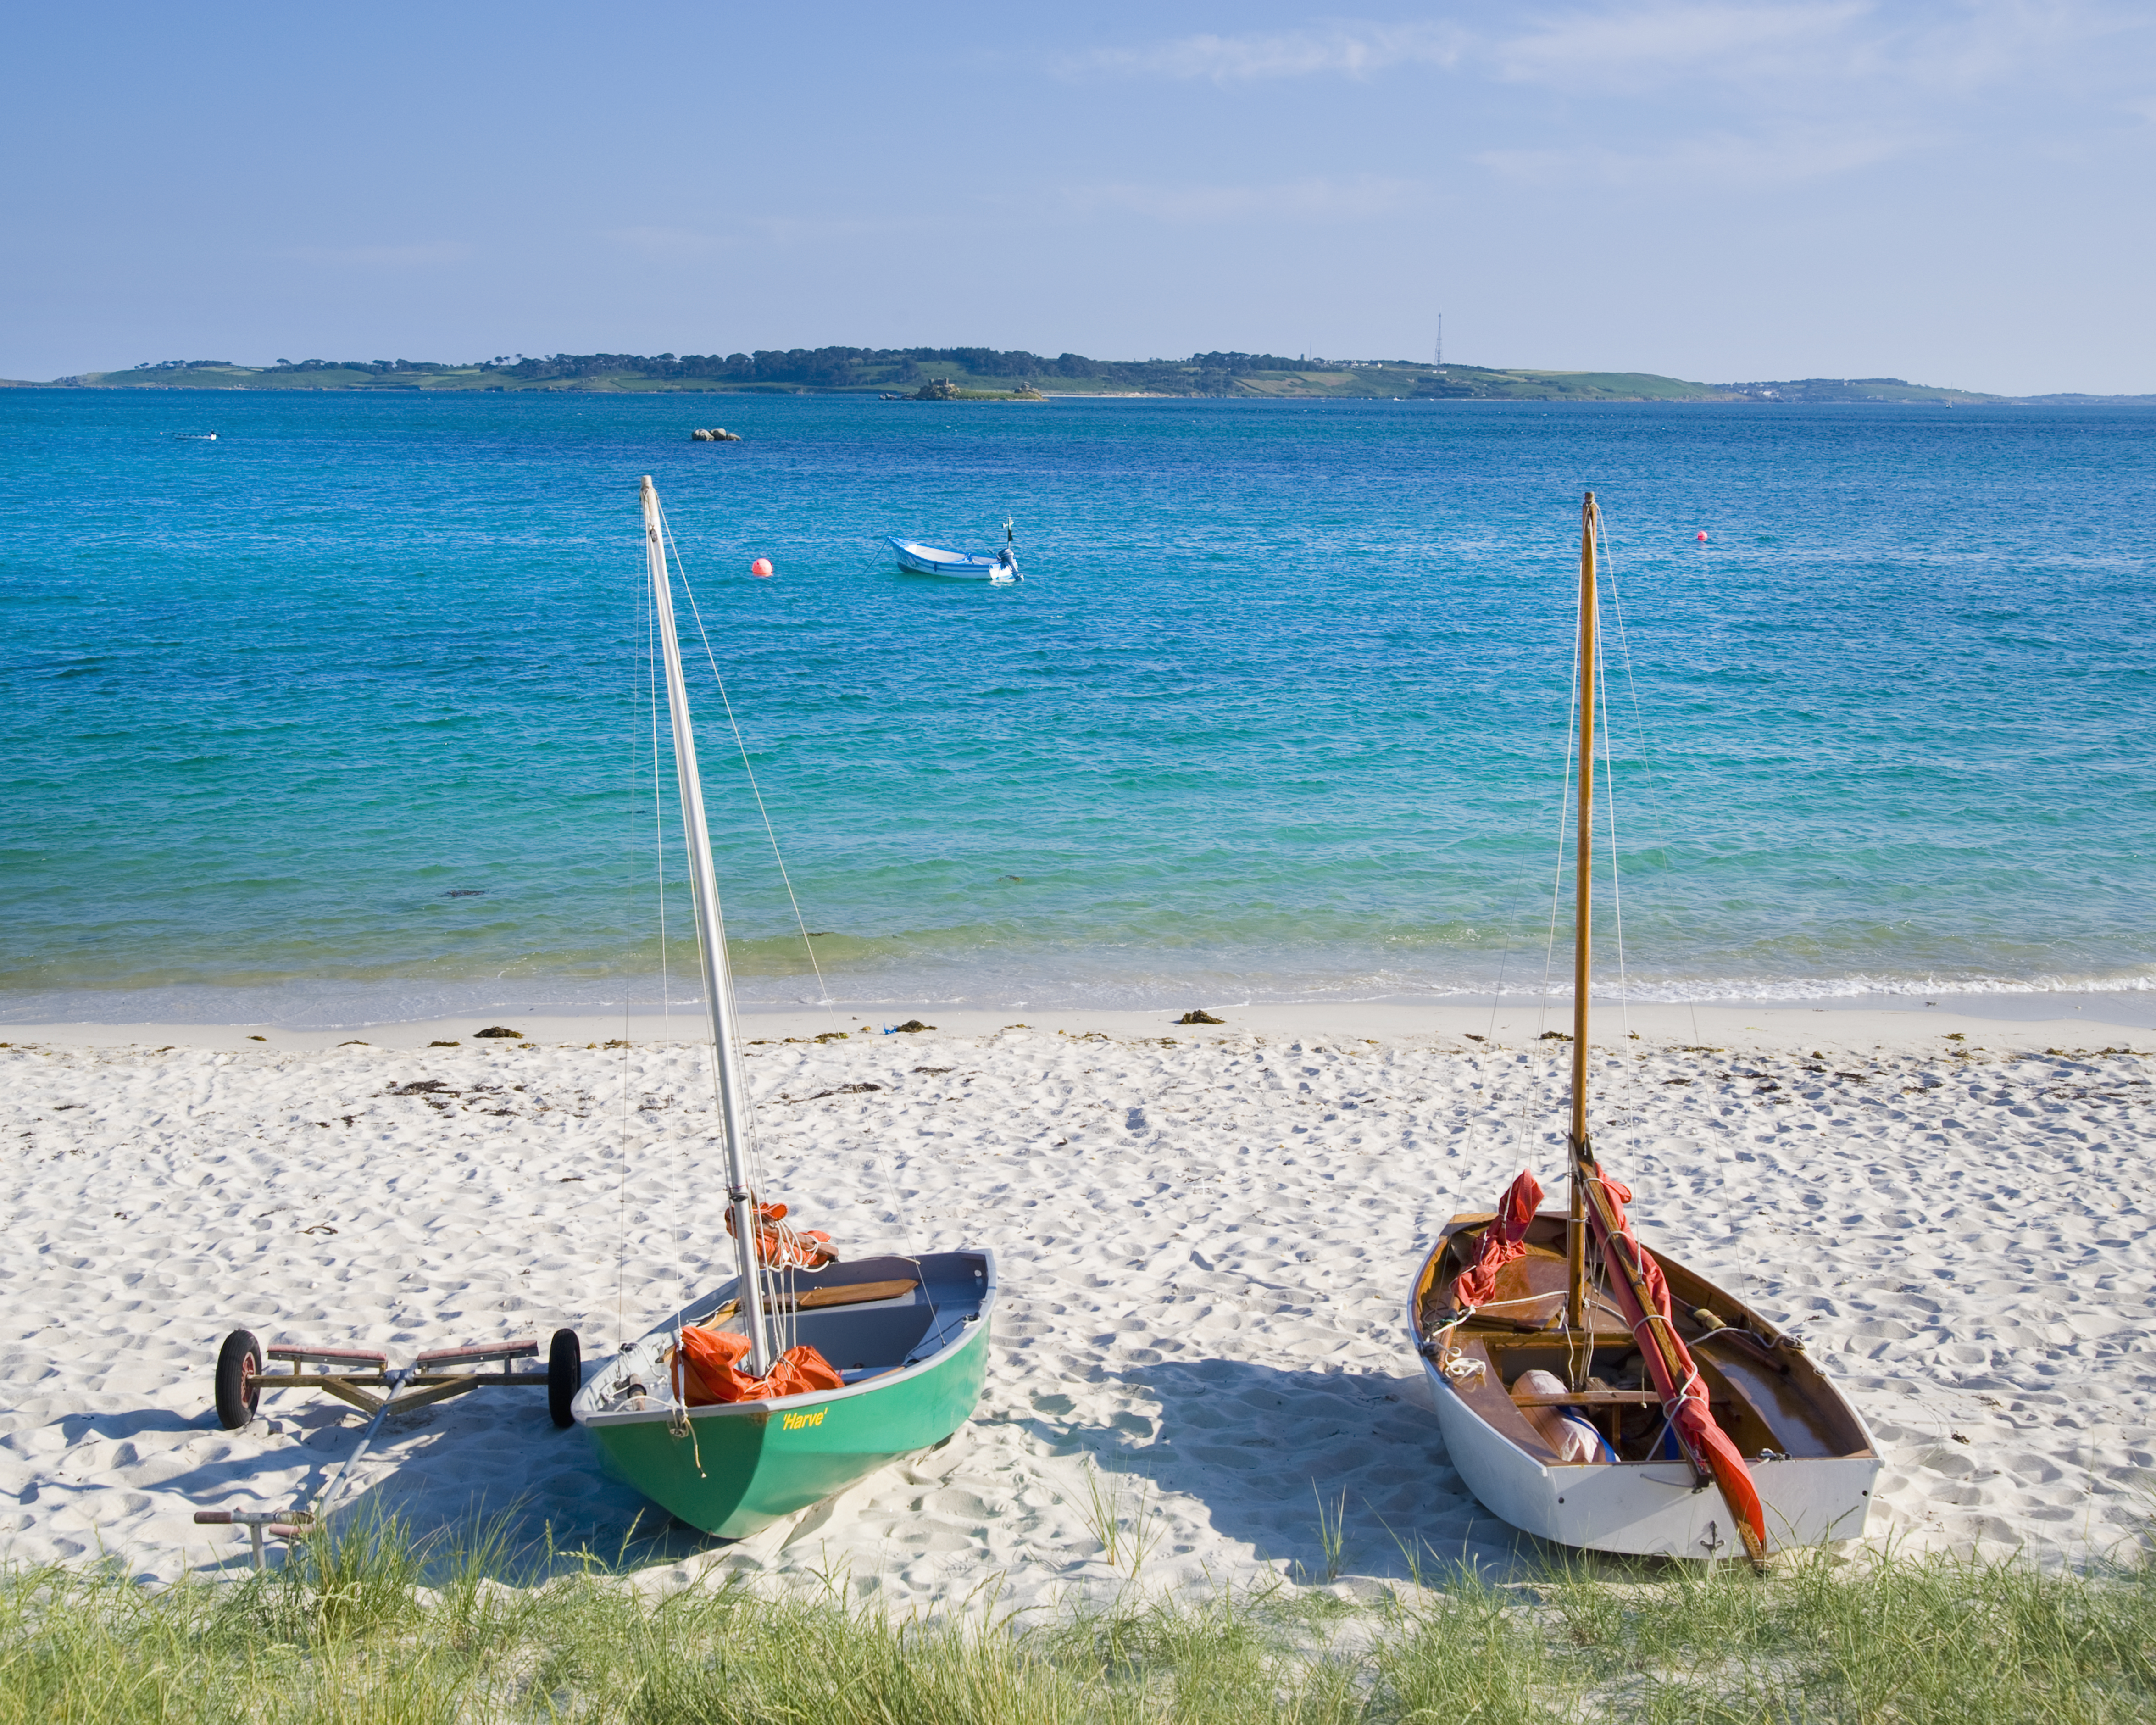 St. Martins Beach, Isles of Scilly.